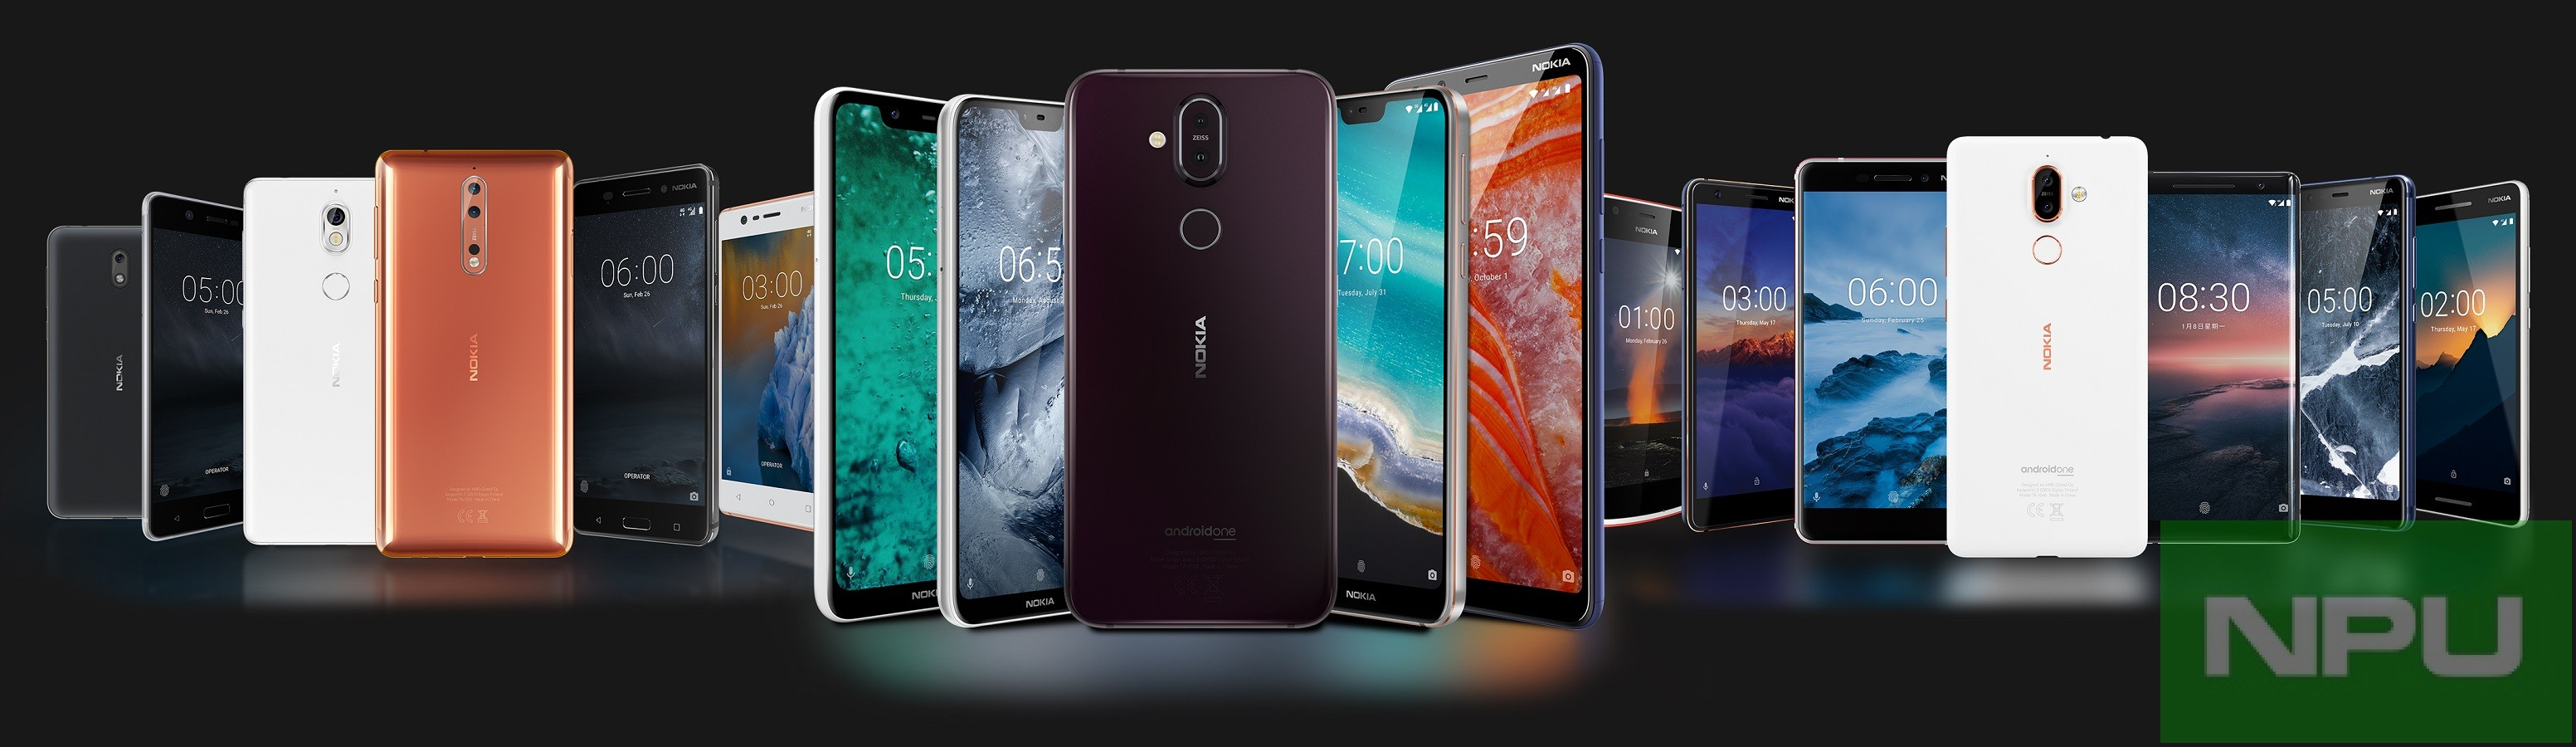 Hmd Had Nokia Phones Sales Of Eur 2 4 Billion And A Loss Of Eur 189 Million In 2019 Nokiapoweruser